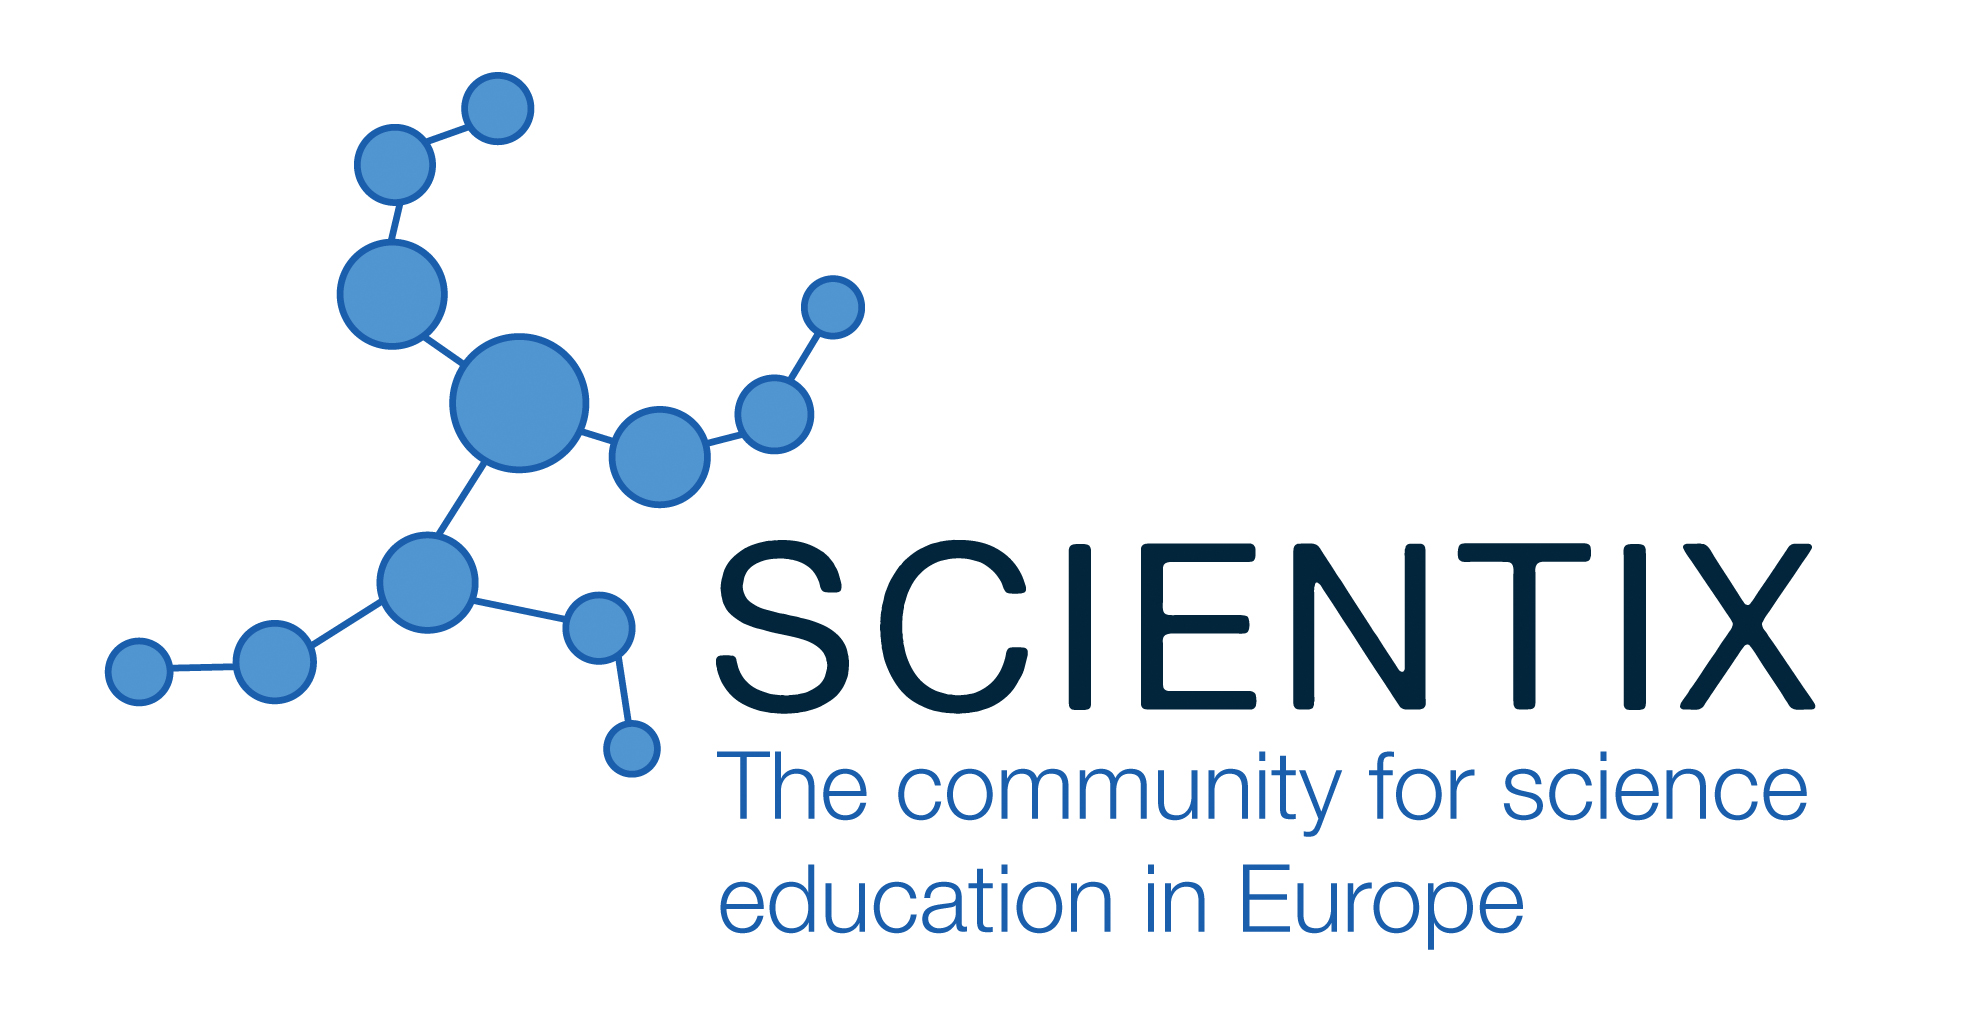 scientix_logo.jpg